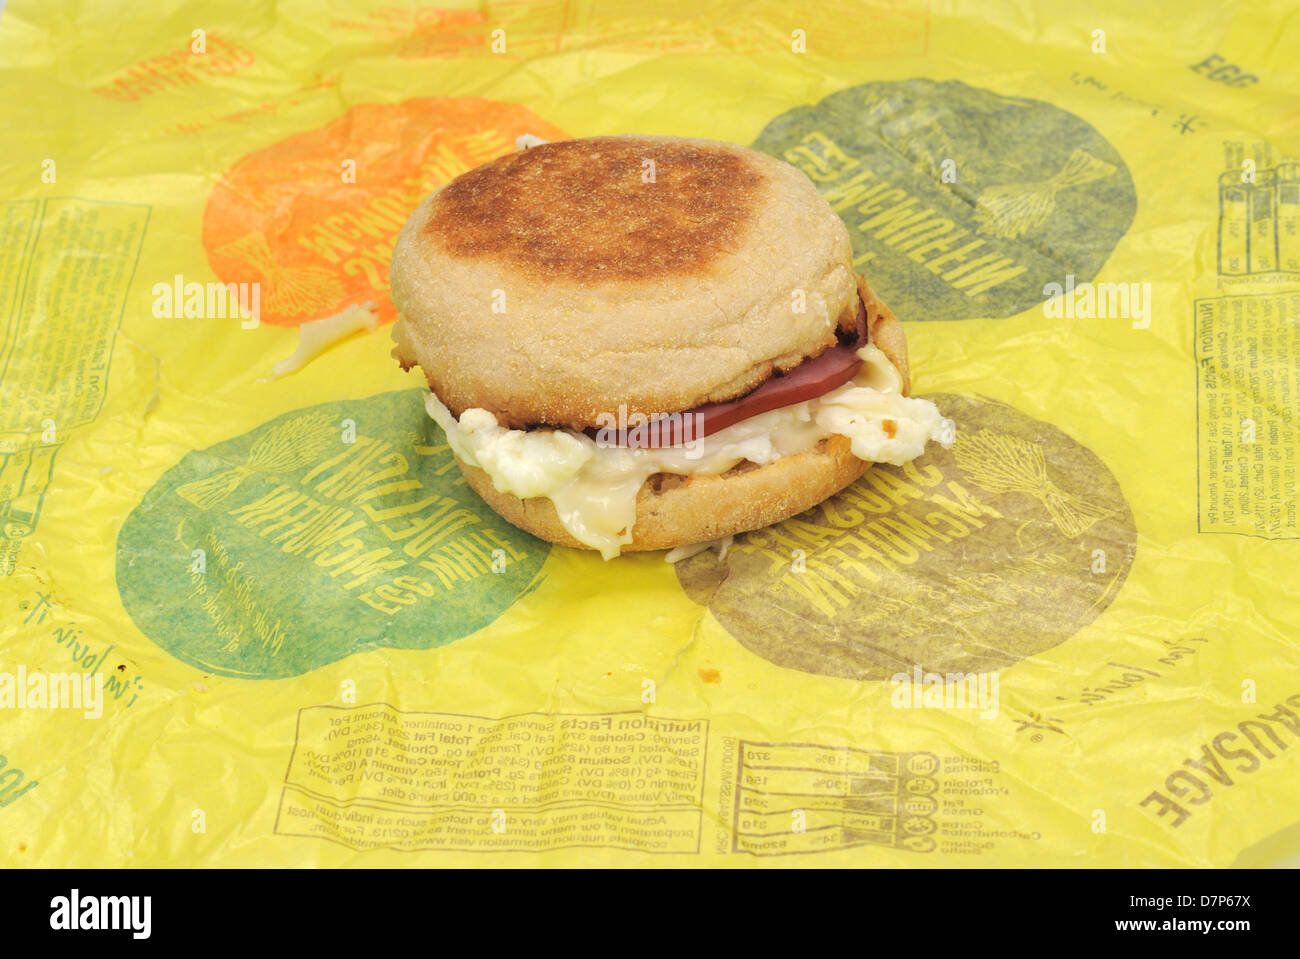 McDonald's Egg White Delight McMuffin breakfast sandwich on paper wrapper. USA - Stock Image